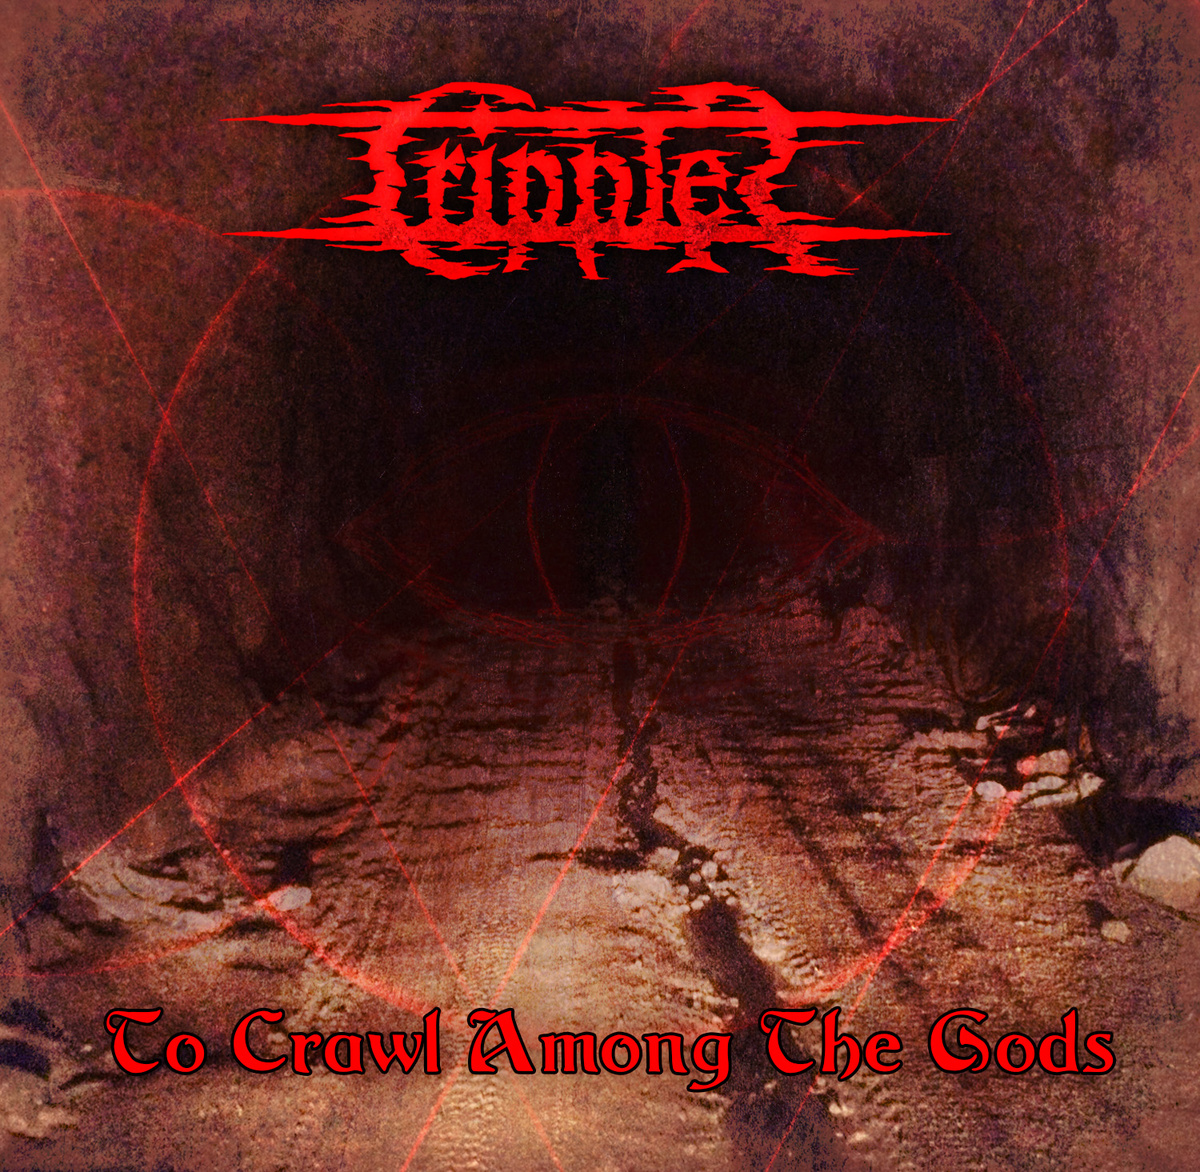 Crippler – To Crawl Among the Gods